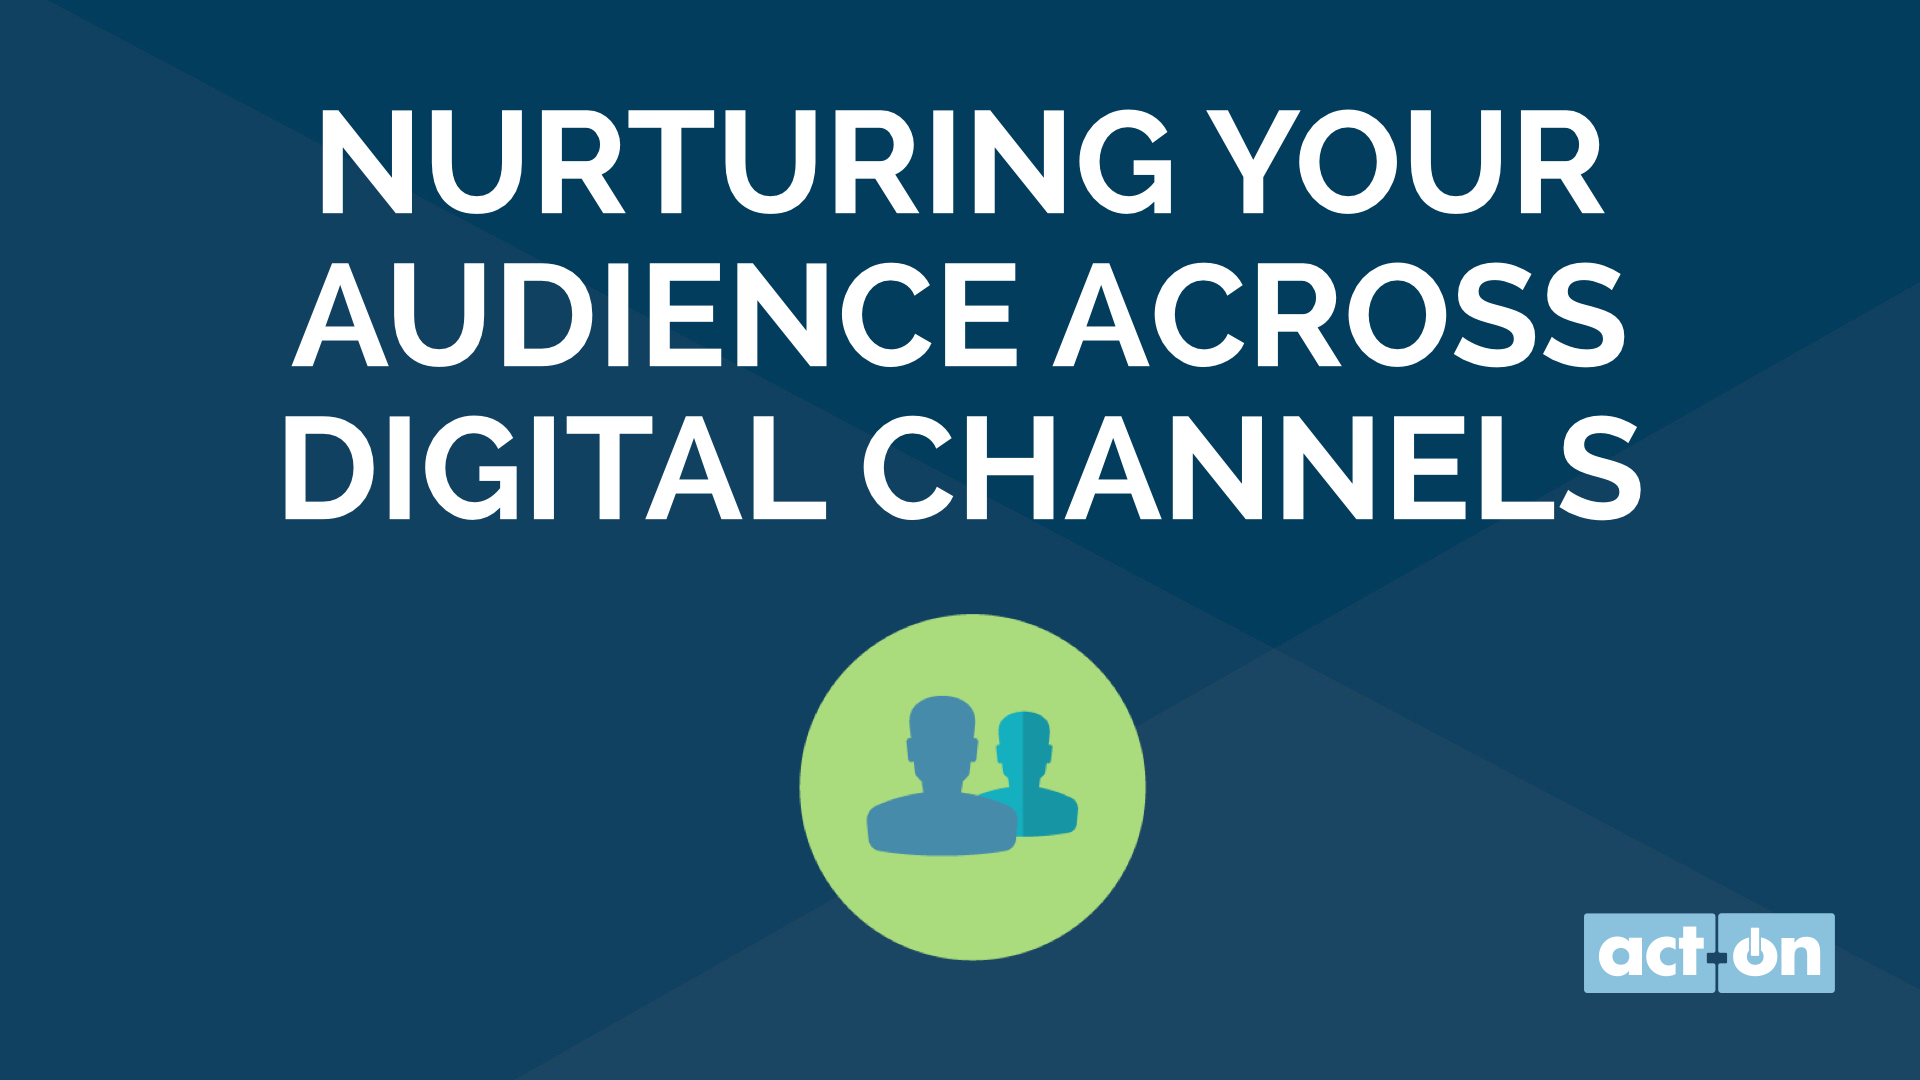 Nurturing Your Audience Across Digital Channels